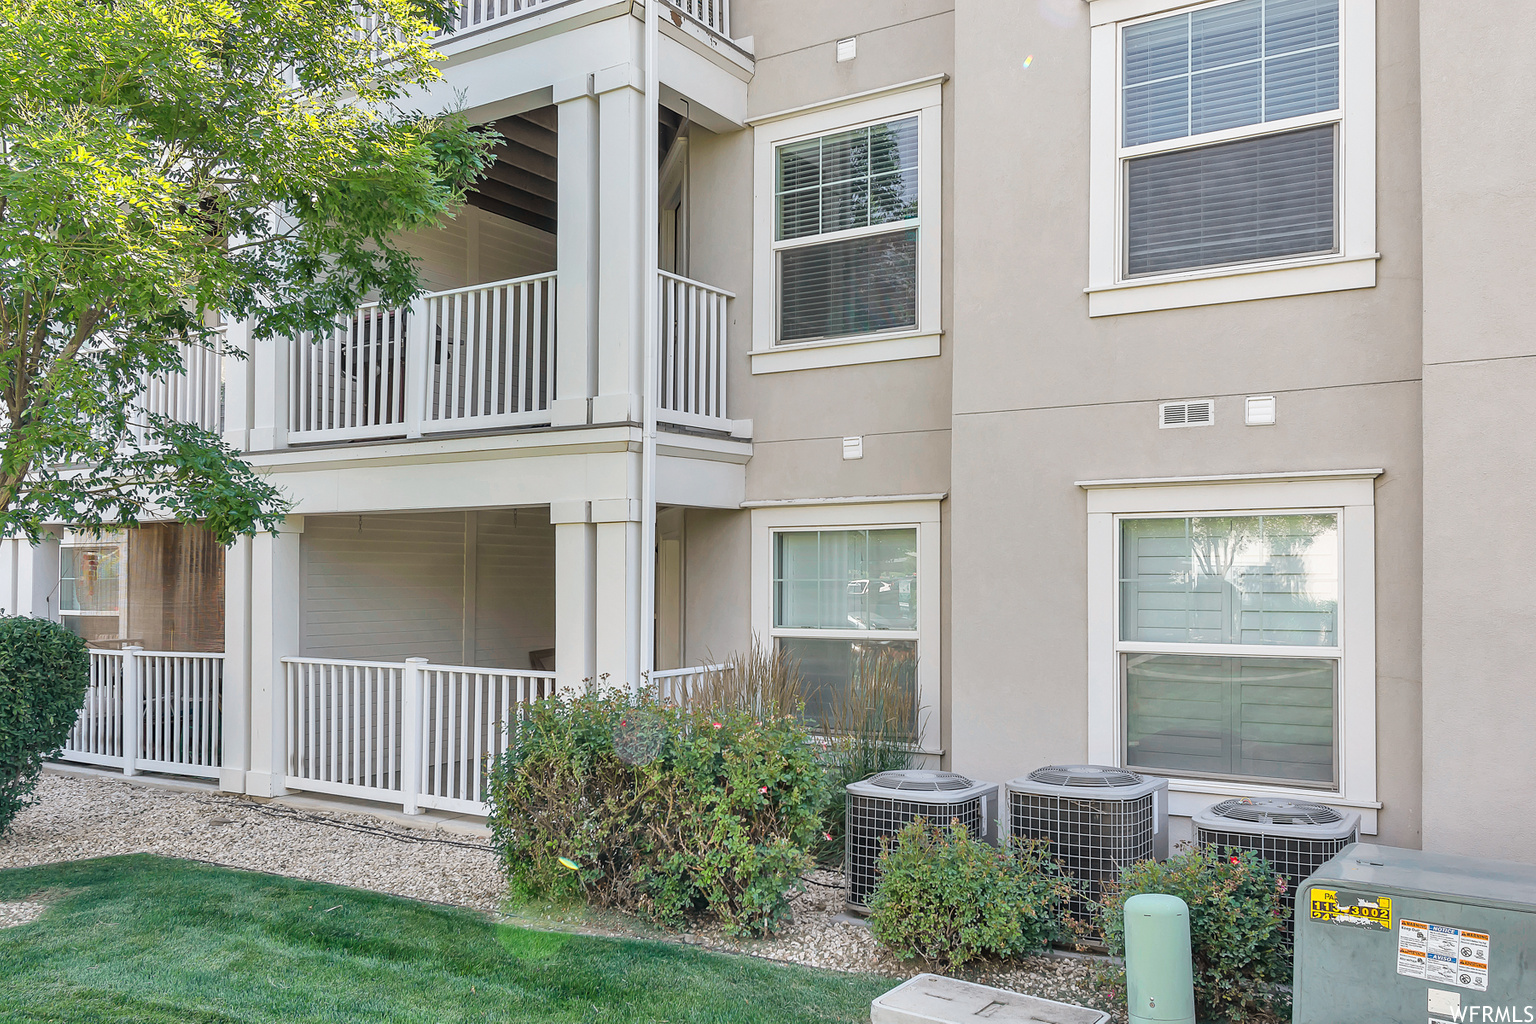 11776 S GRANDVILLE AVE Unit 108, South Jordan UT 84009